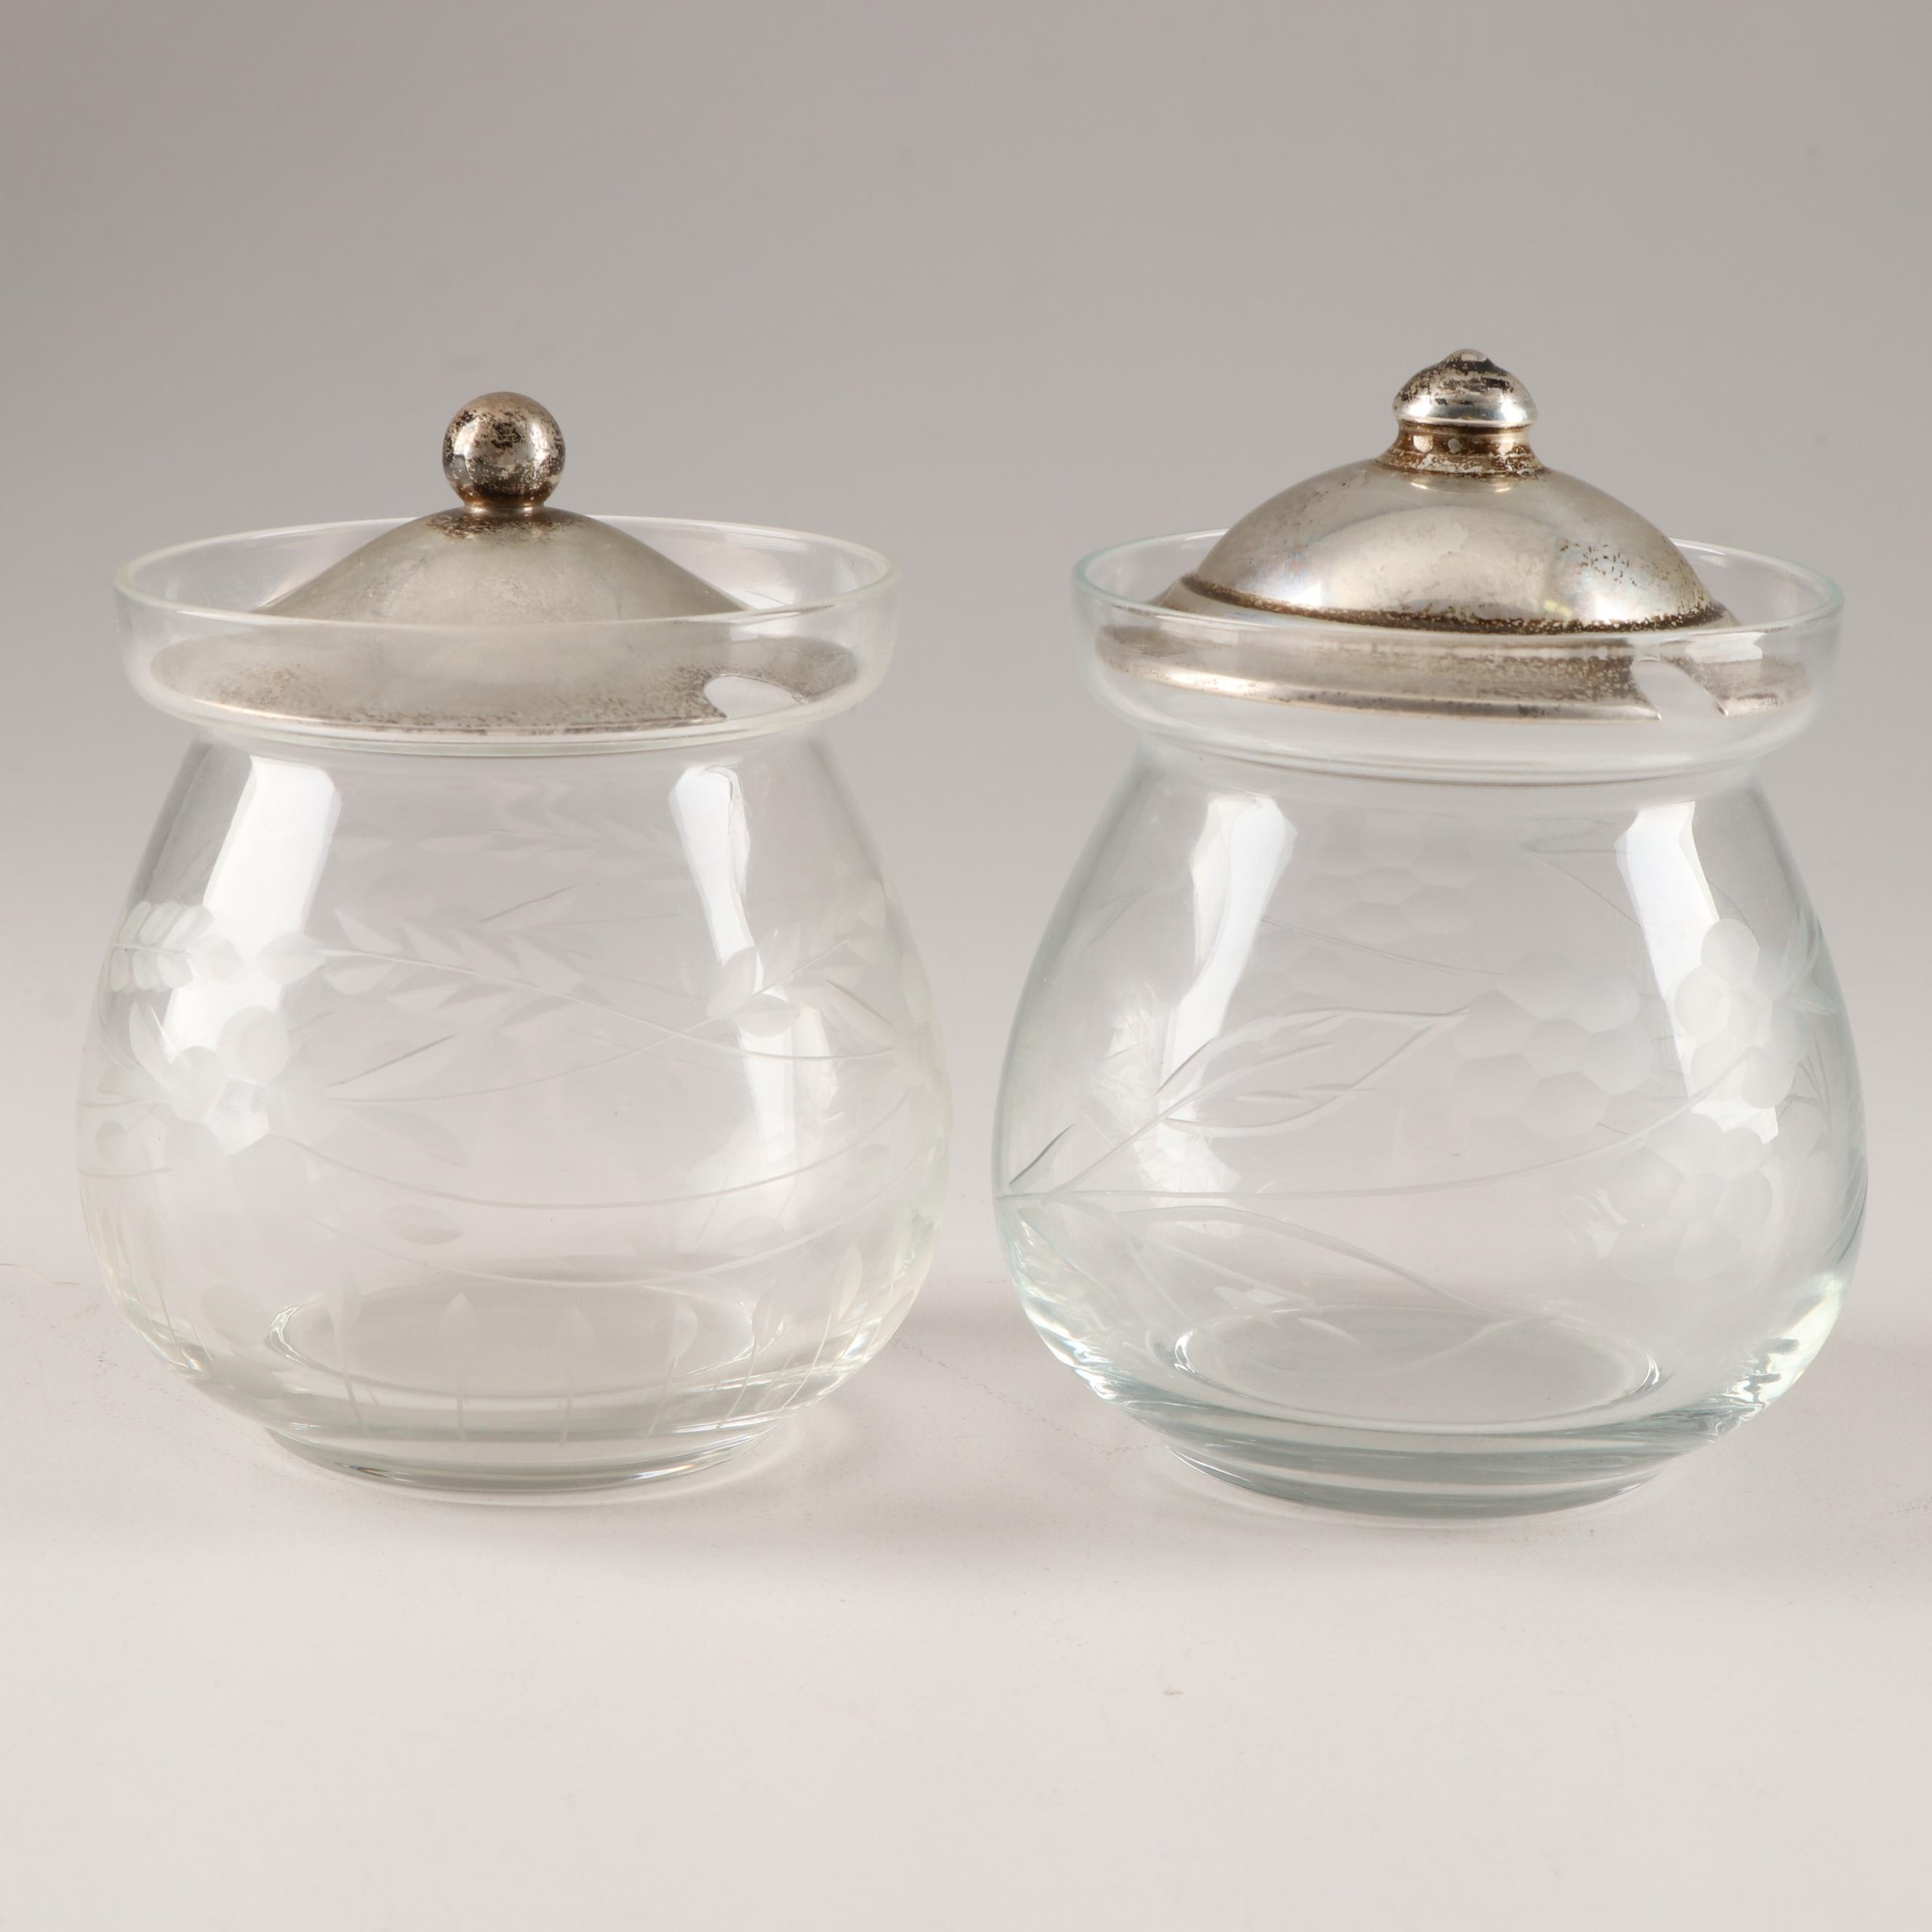 Frank M. Whiting and Webster Etched Glass Jelly Jars with Sterling Silver Lids